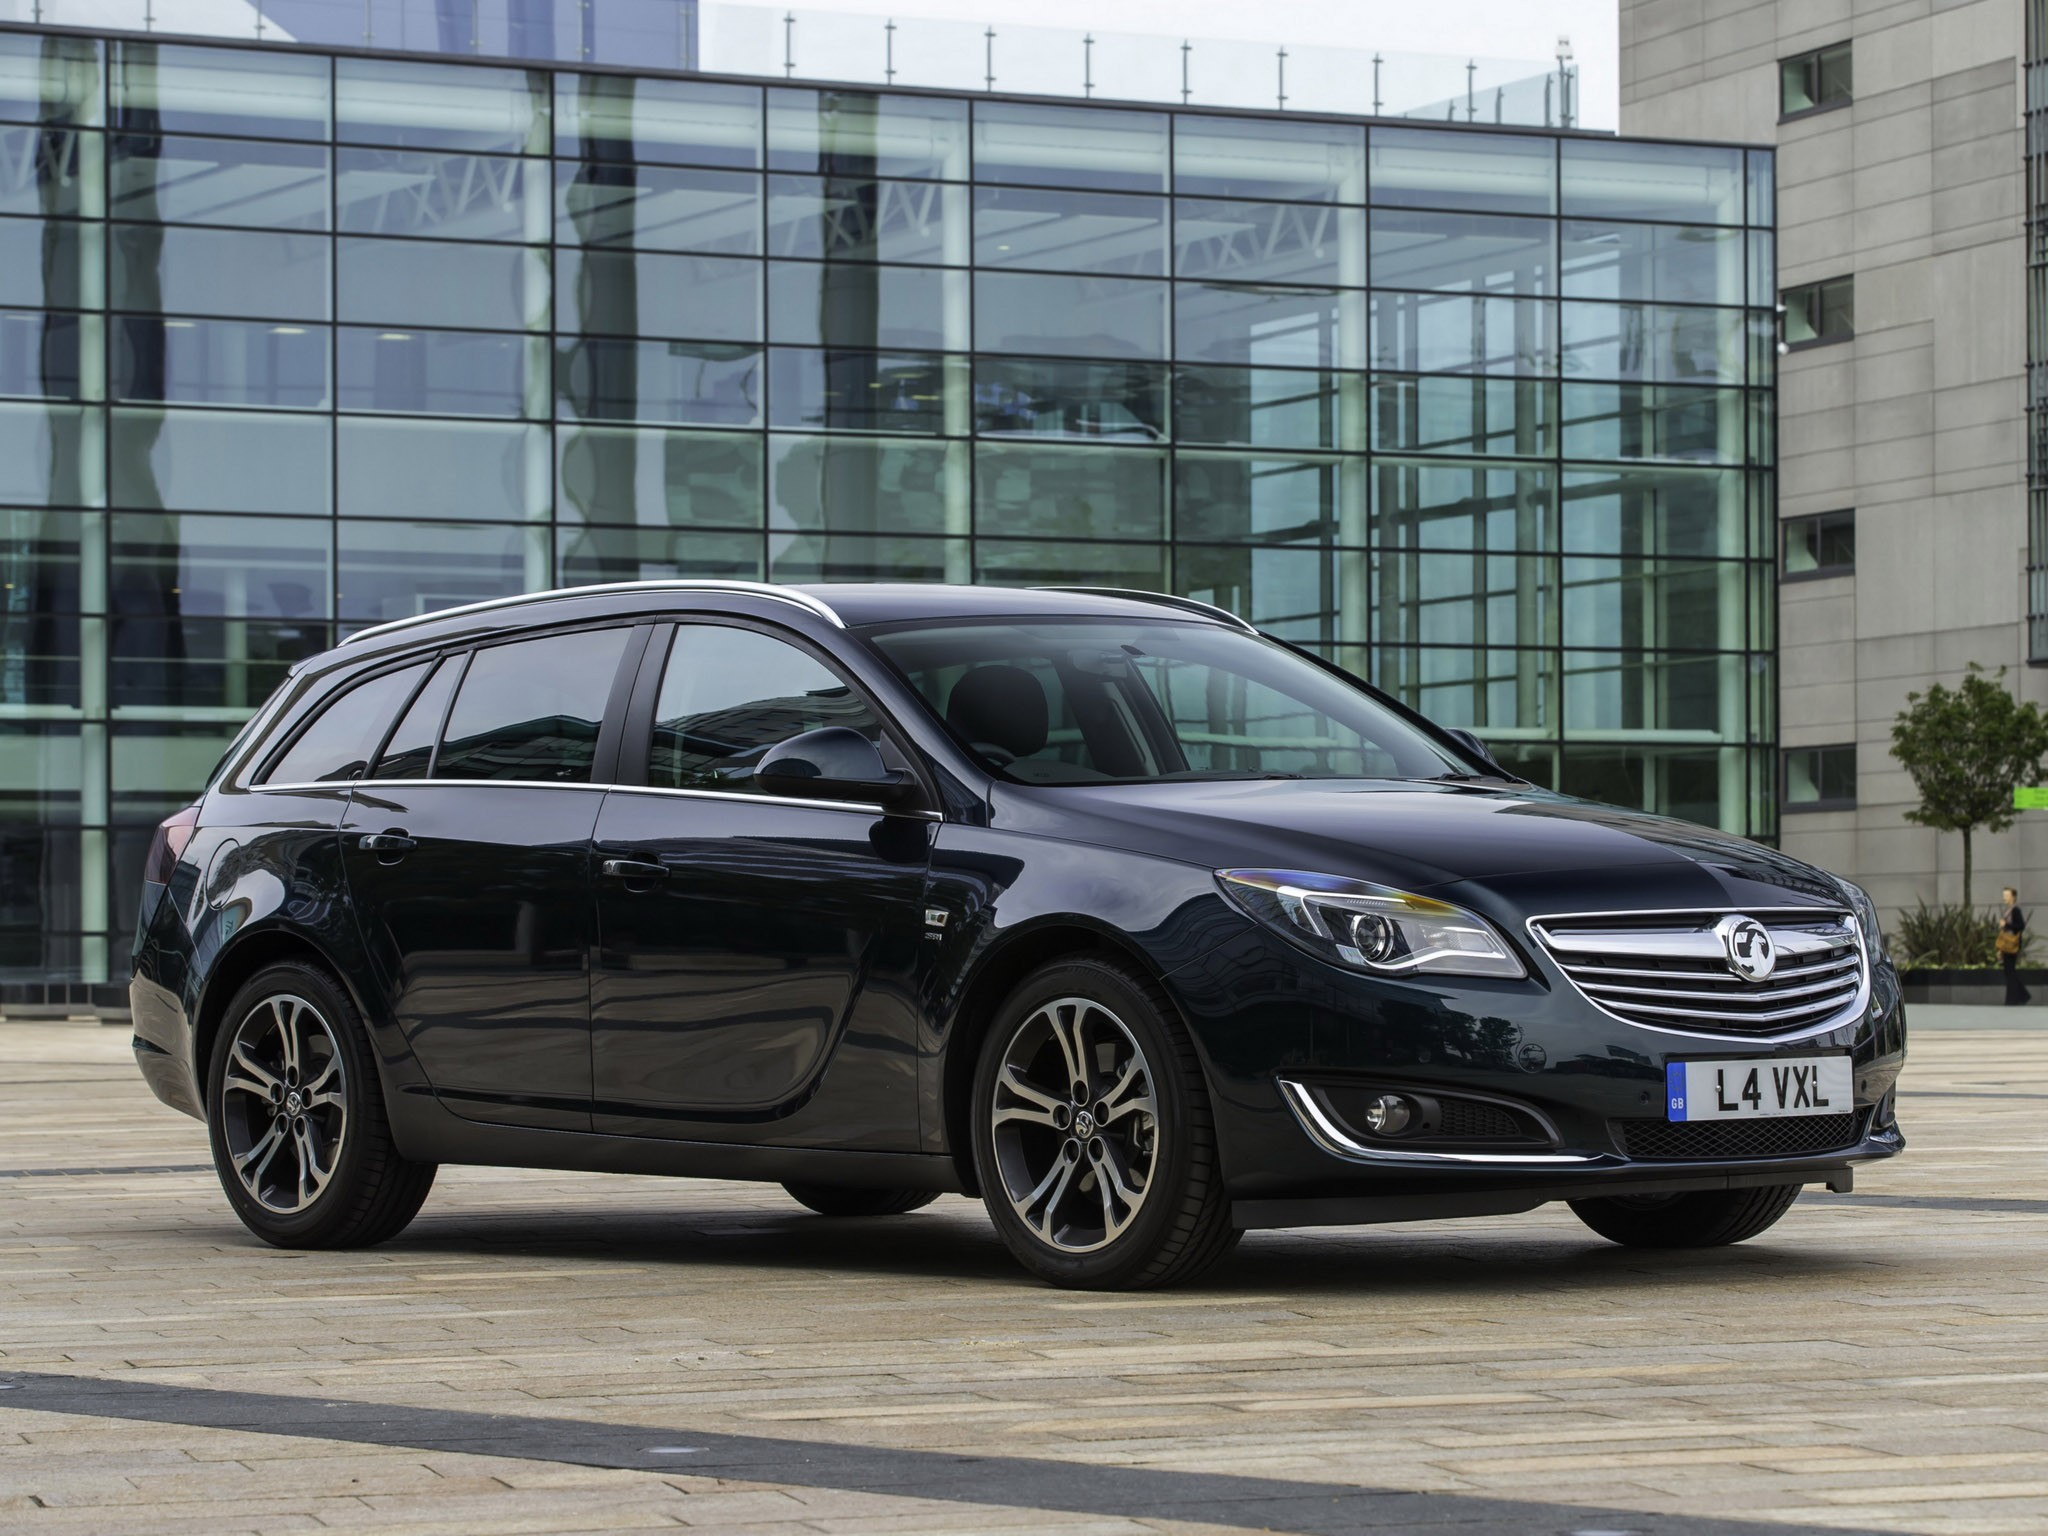 2013 Vauxhall Insignia Sports Tourer